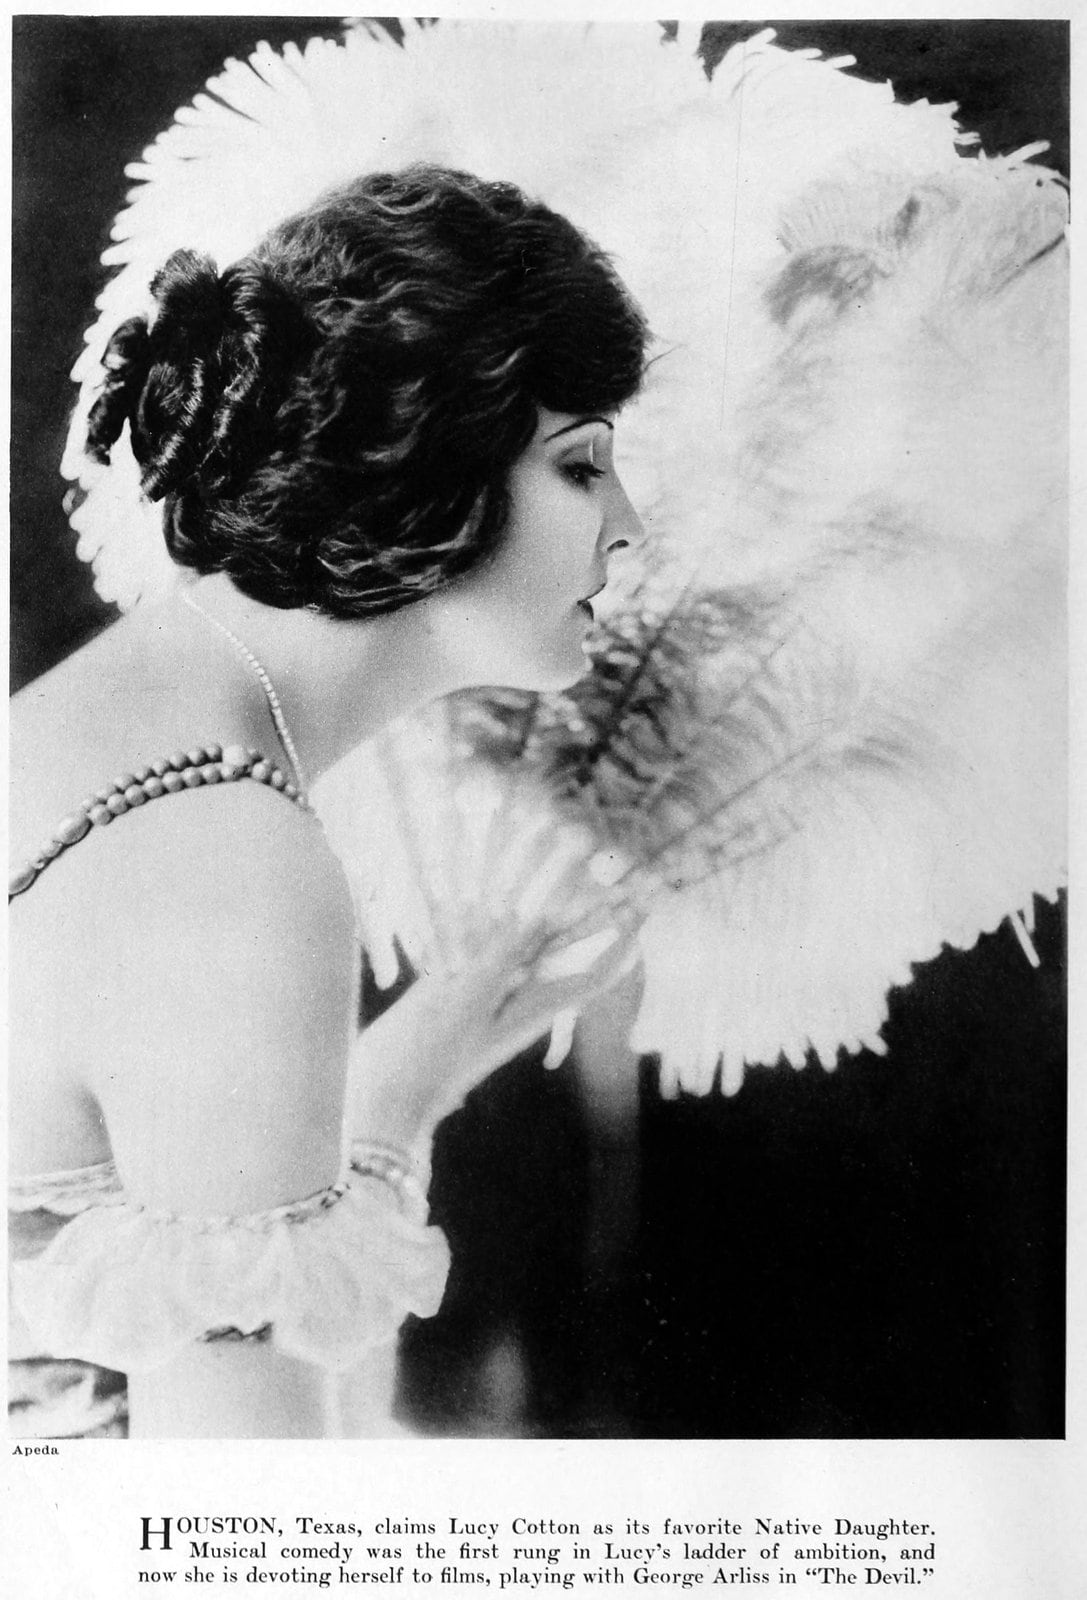 Real vintage 1920s hairstyles for women - actress Lucy Cotton